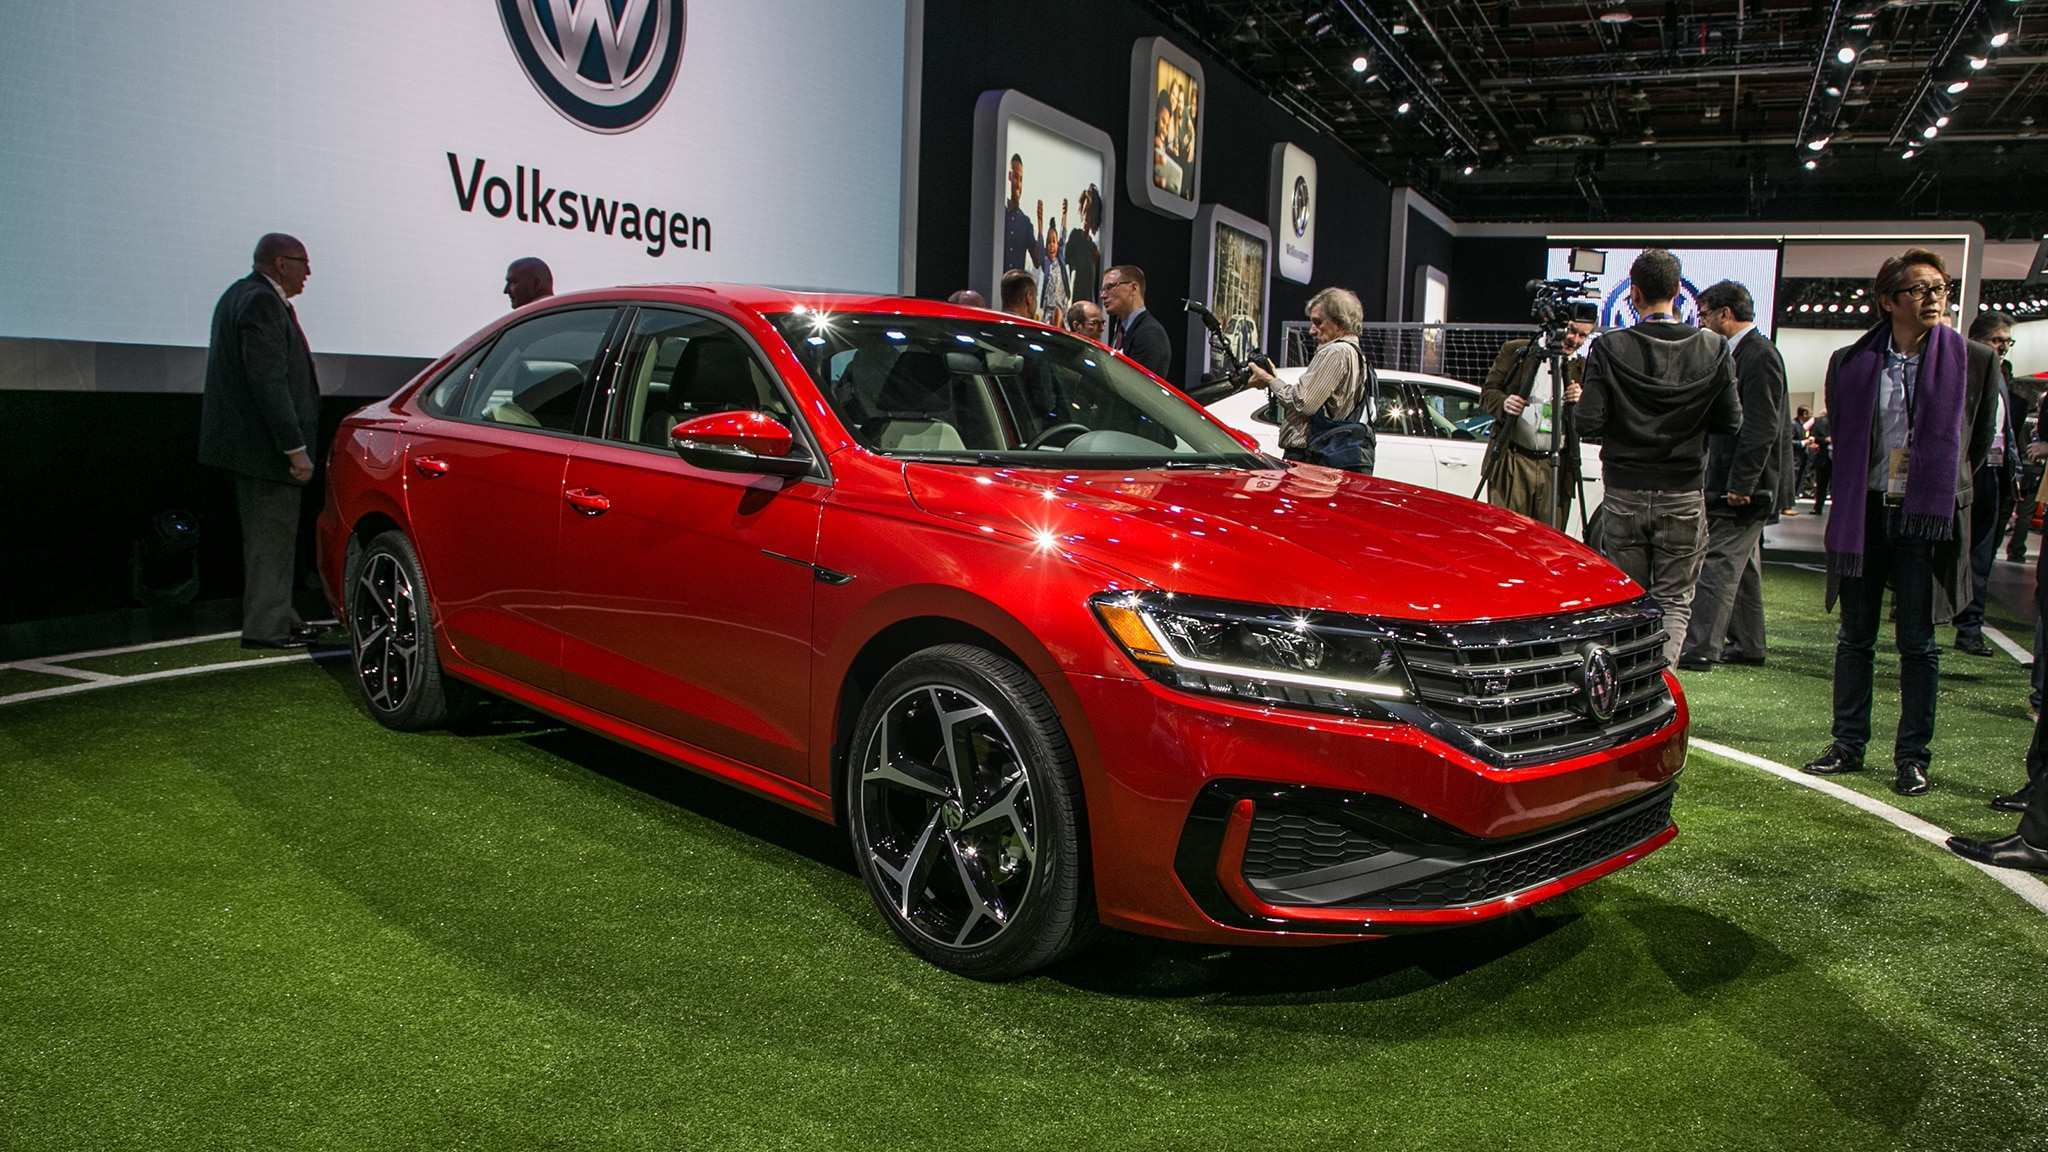 90 New 2020 VW Passat Tdi Release Date with 2020 VW Passat Tdi